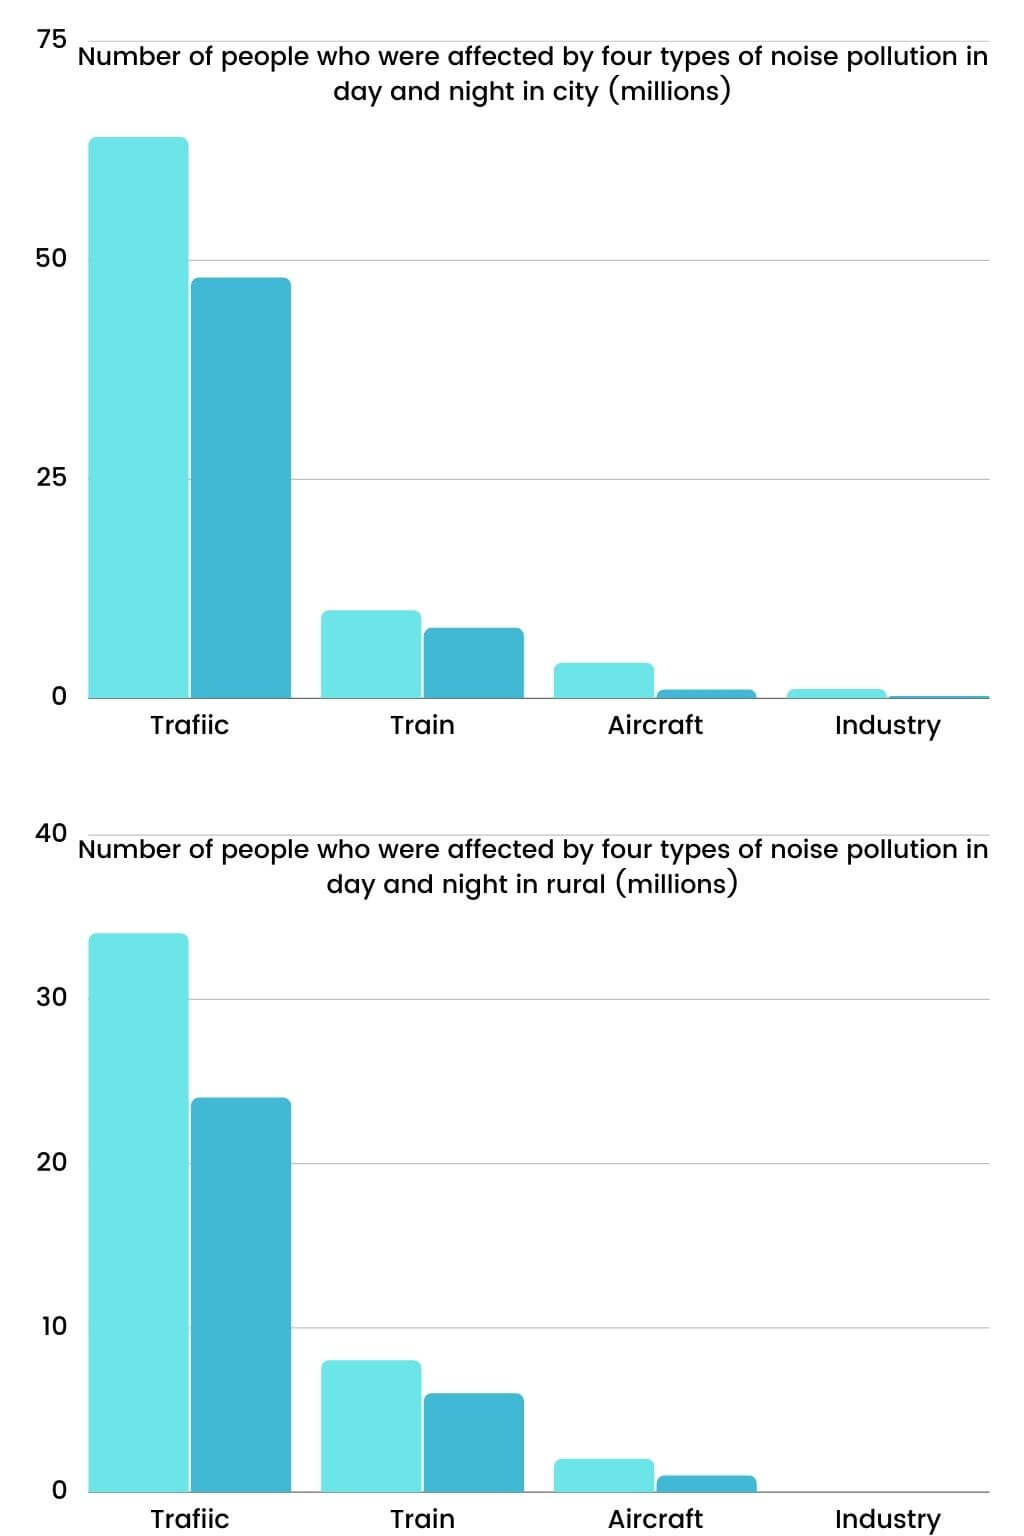 IELTS Writing Task 1-Number of people affected by four types of noise pollution day and night in cities and rural areas in 2007